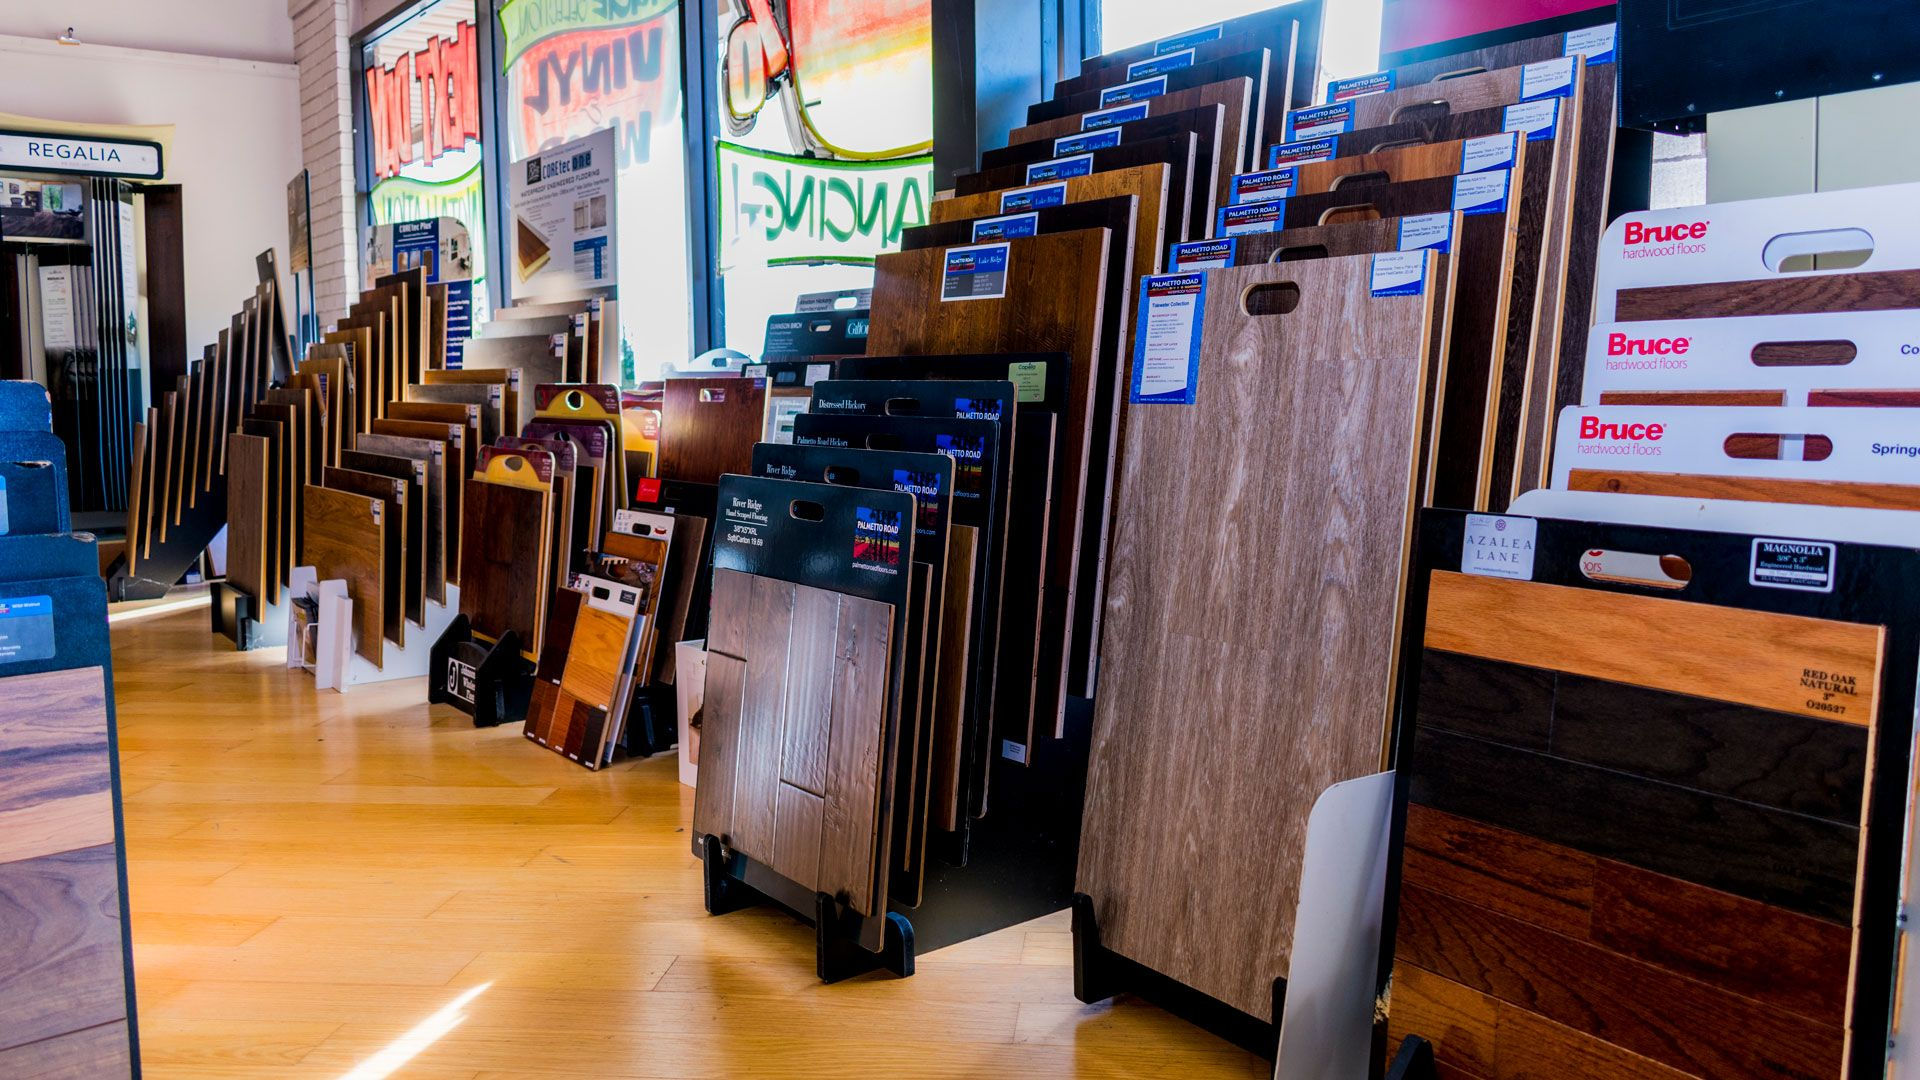 Carpet Depot Snellville Hardwood Showroom   Carpet Depot Carpet Depot Snellville Hardwood Showroom